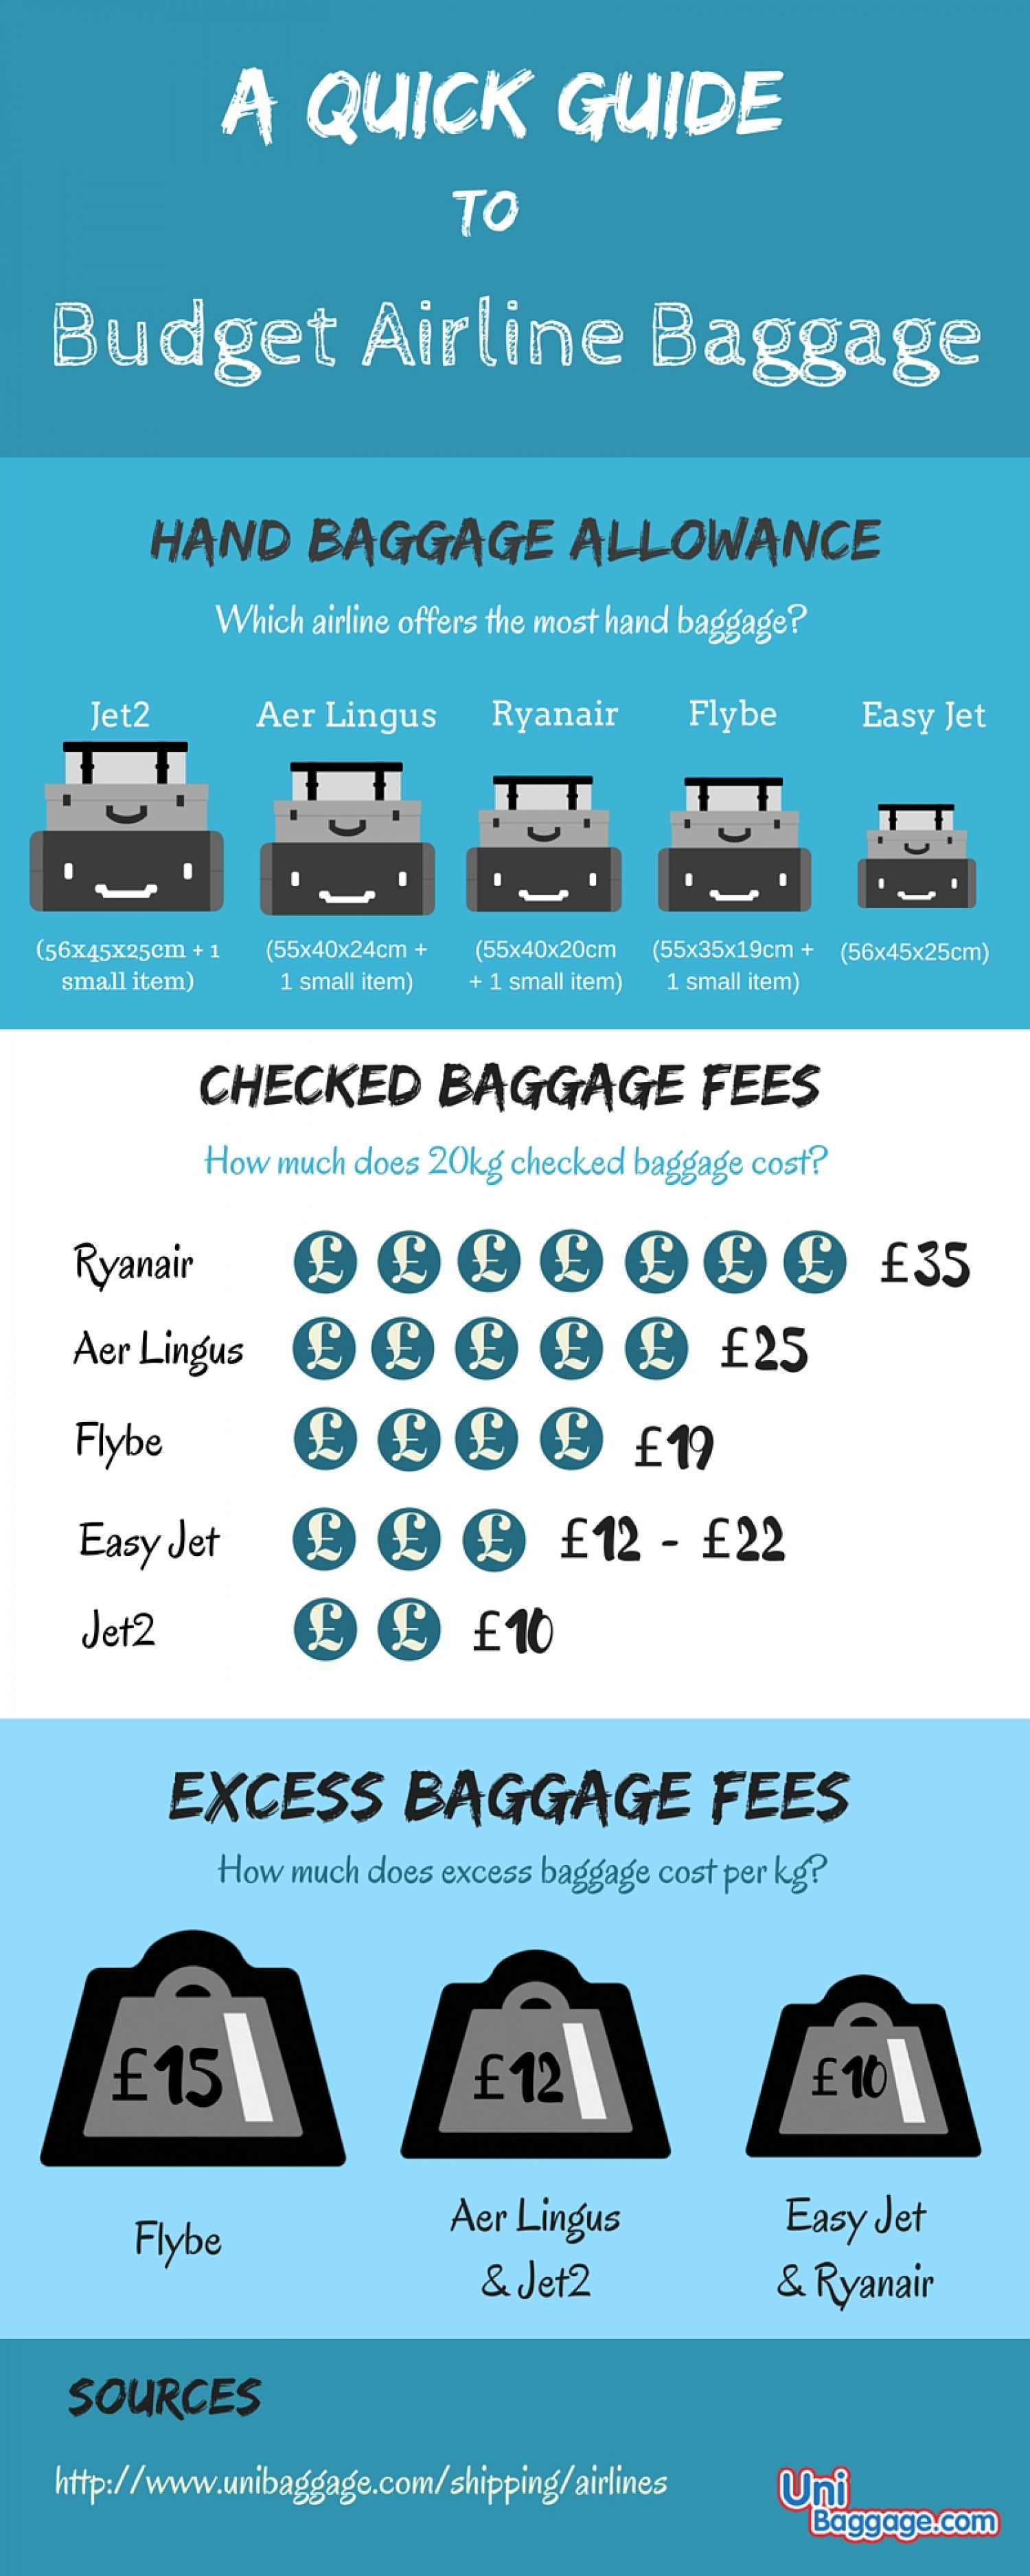 A Quick Guide To Budget Airline Baggage Infographic